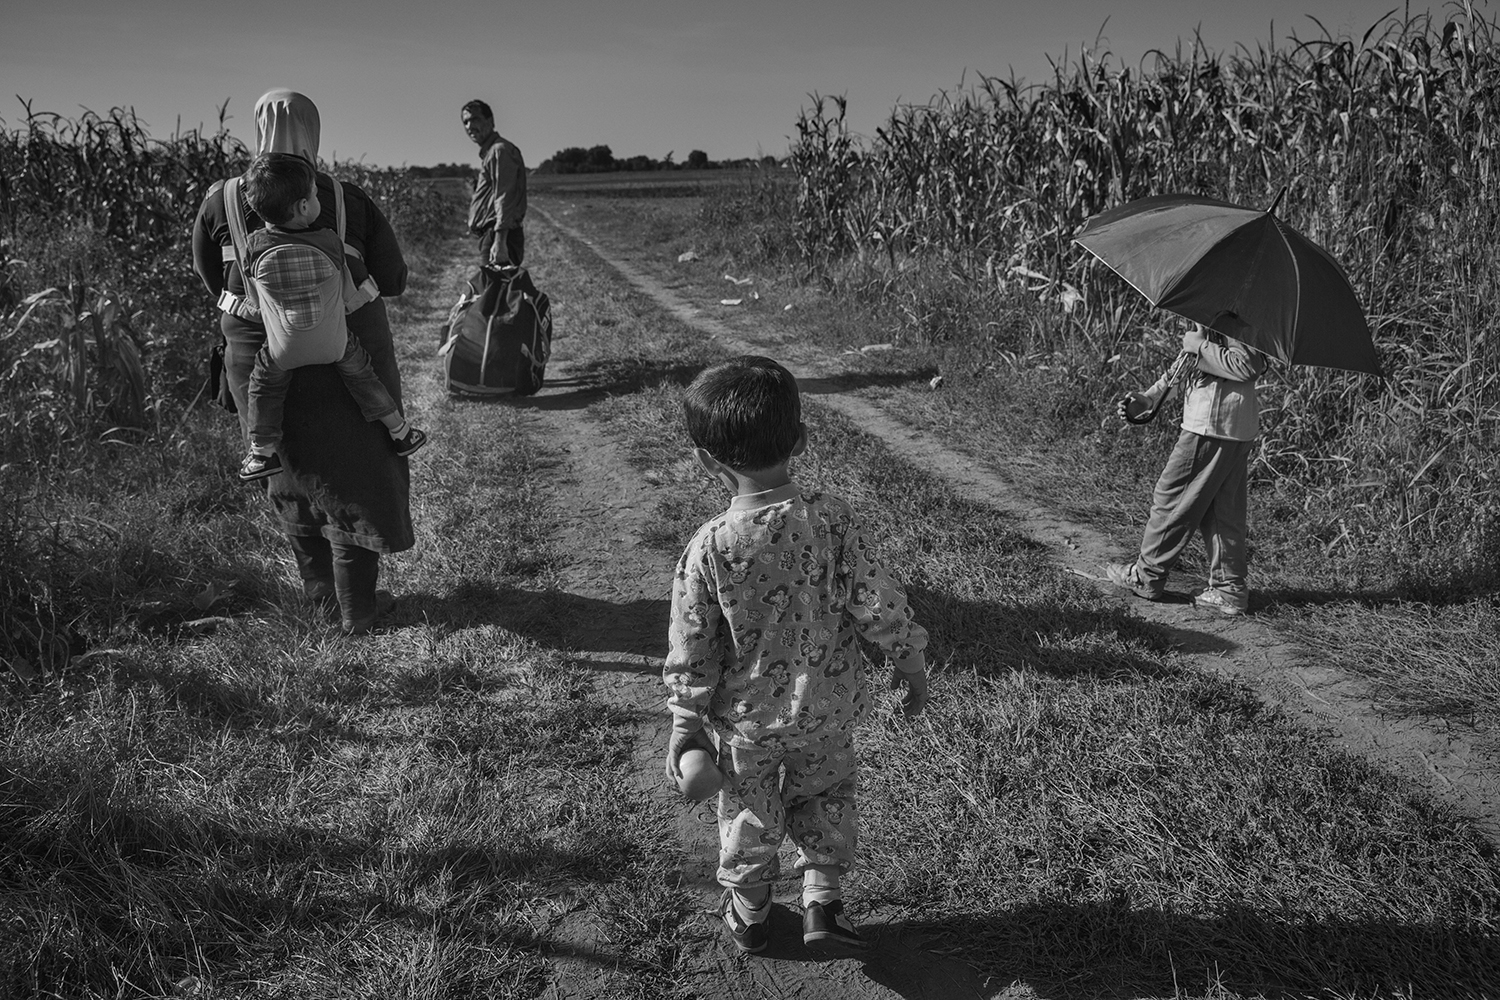 A family walks in the no man's land between Serbia and Croatia, towards the train station in Tovarnik, Croatia, Sept. 18, 2015